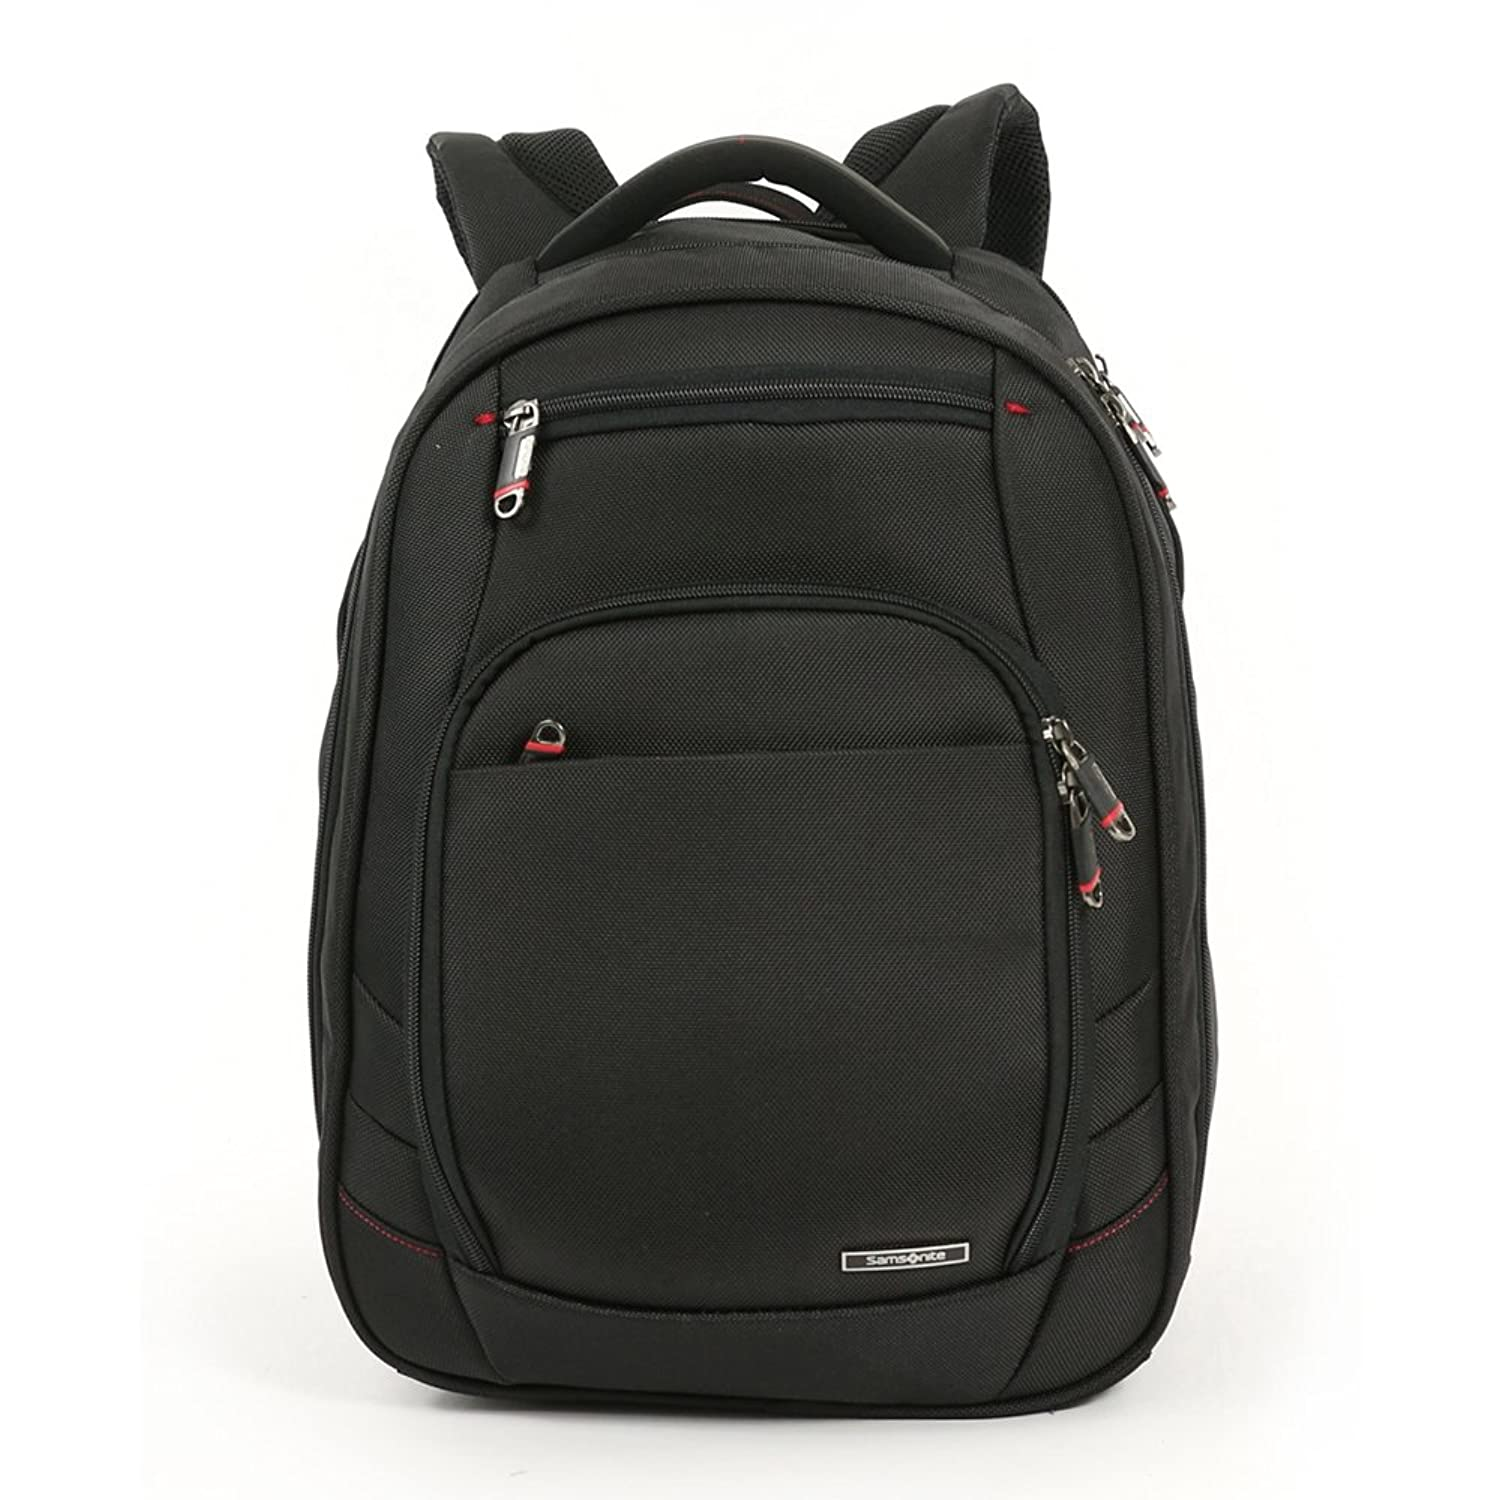 Amazon.com: Samsonite Xenon 2 Backpack PFT Case Black 18 inch ...